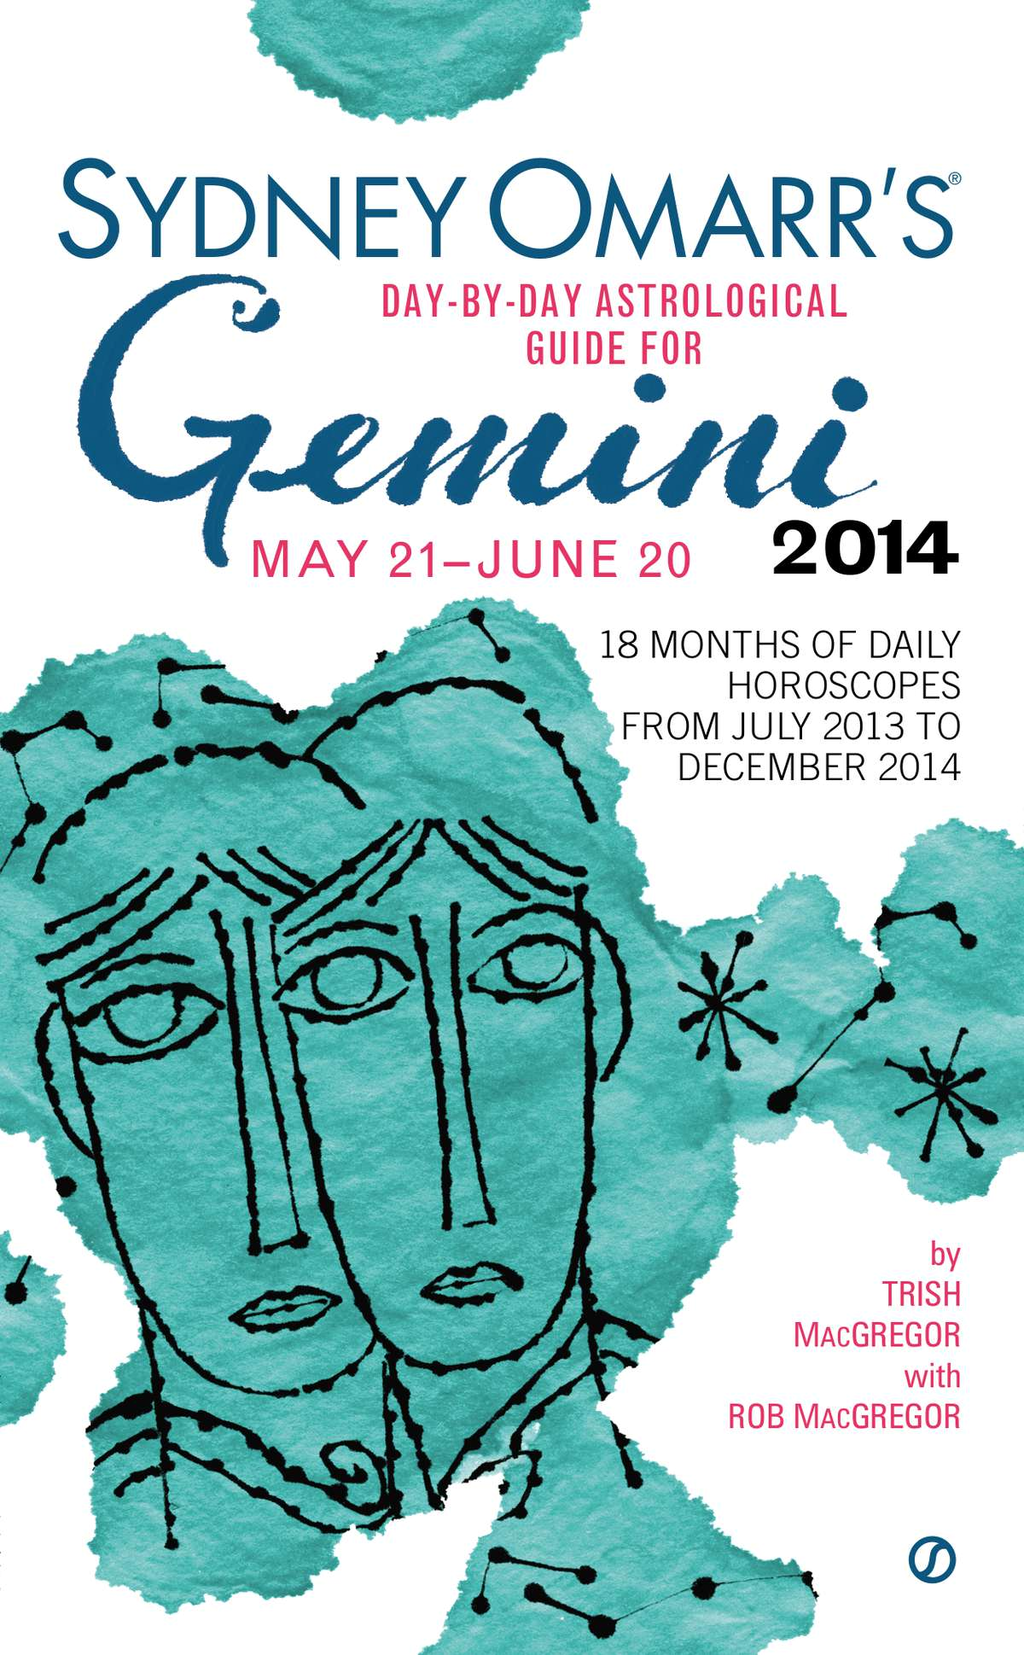 Sydney Omarr's Day-By-Day Astrological Guide for the Year 2014: Gemini